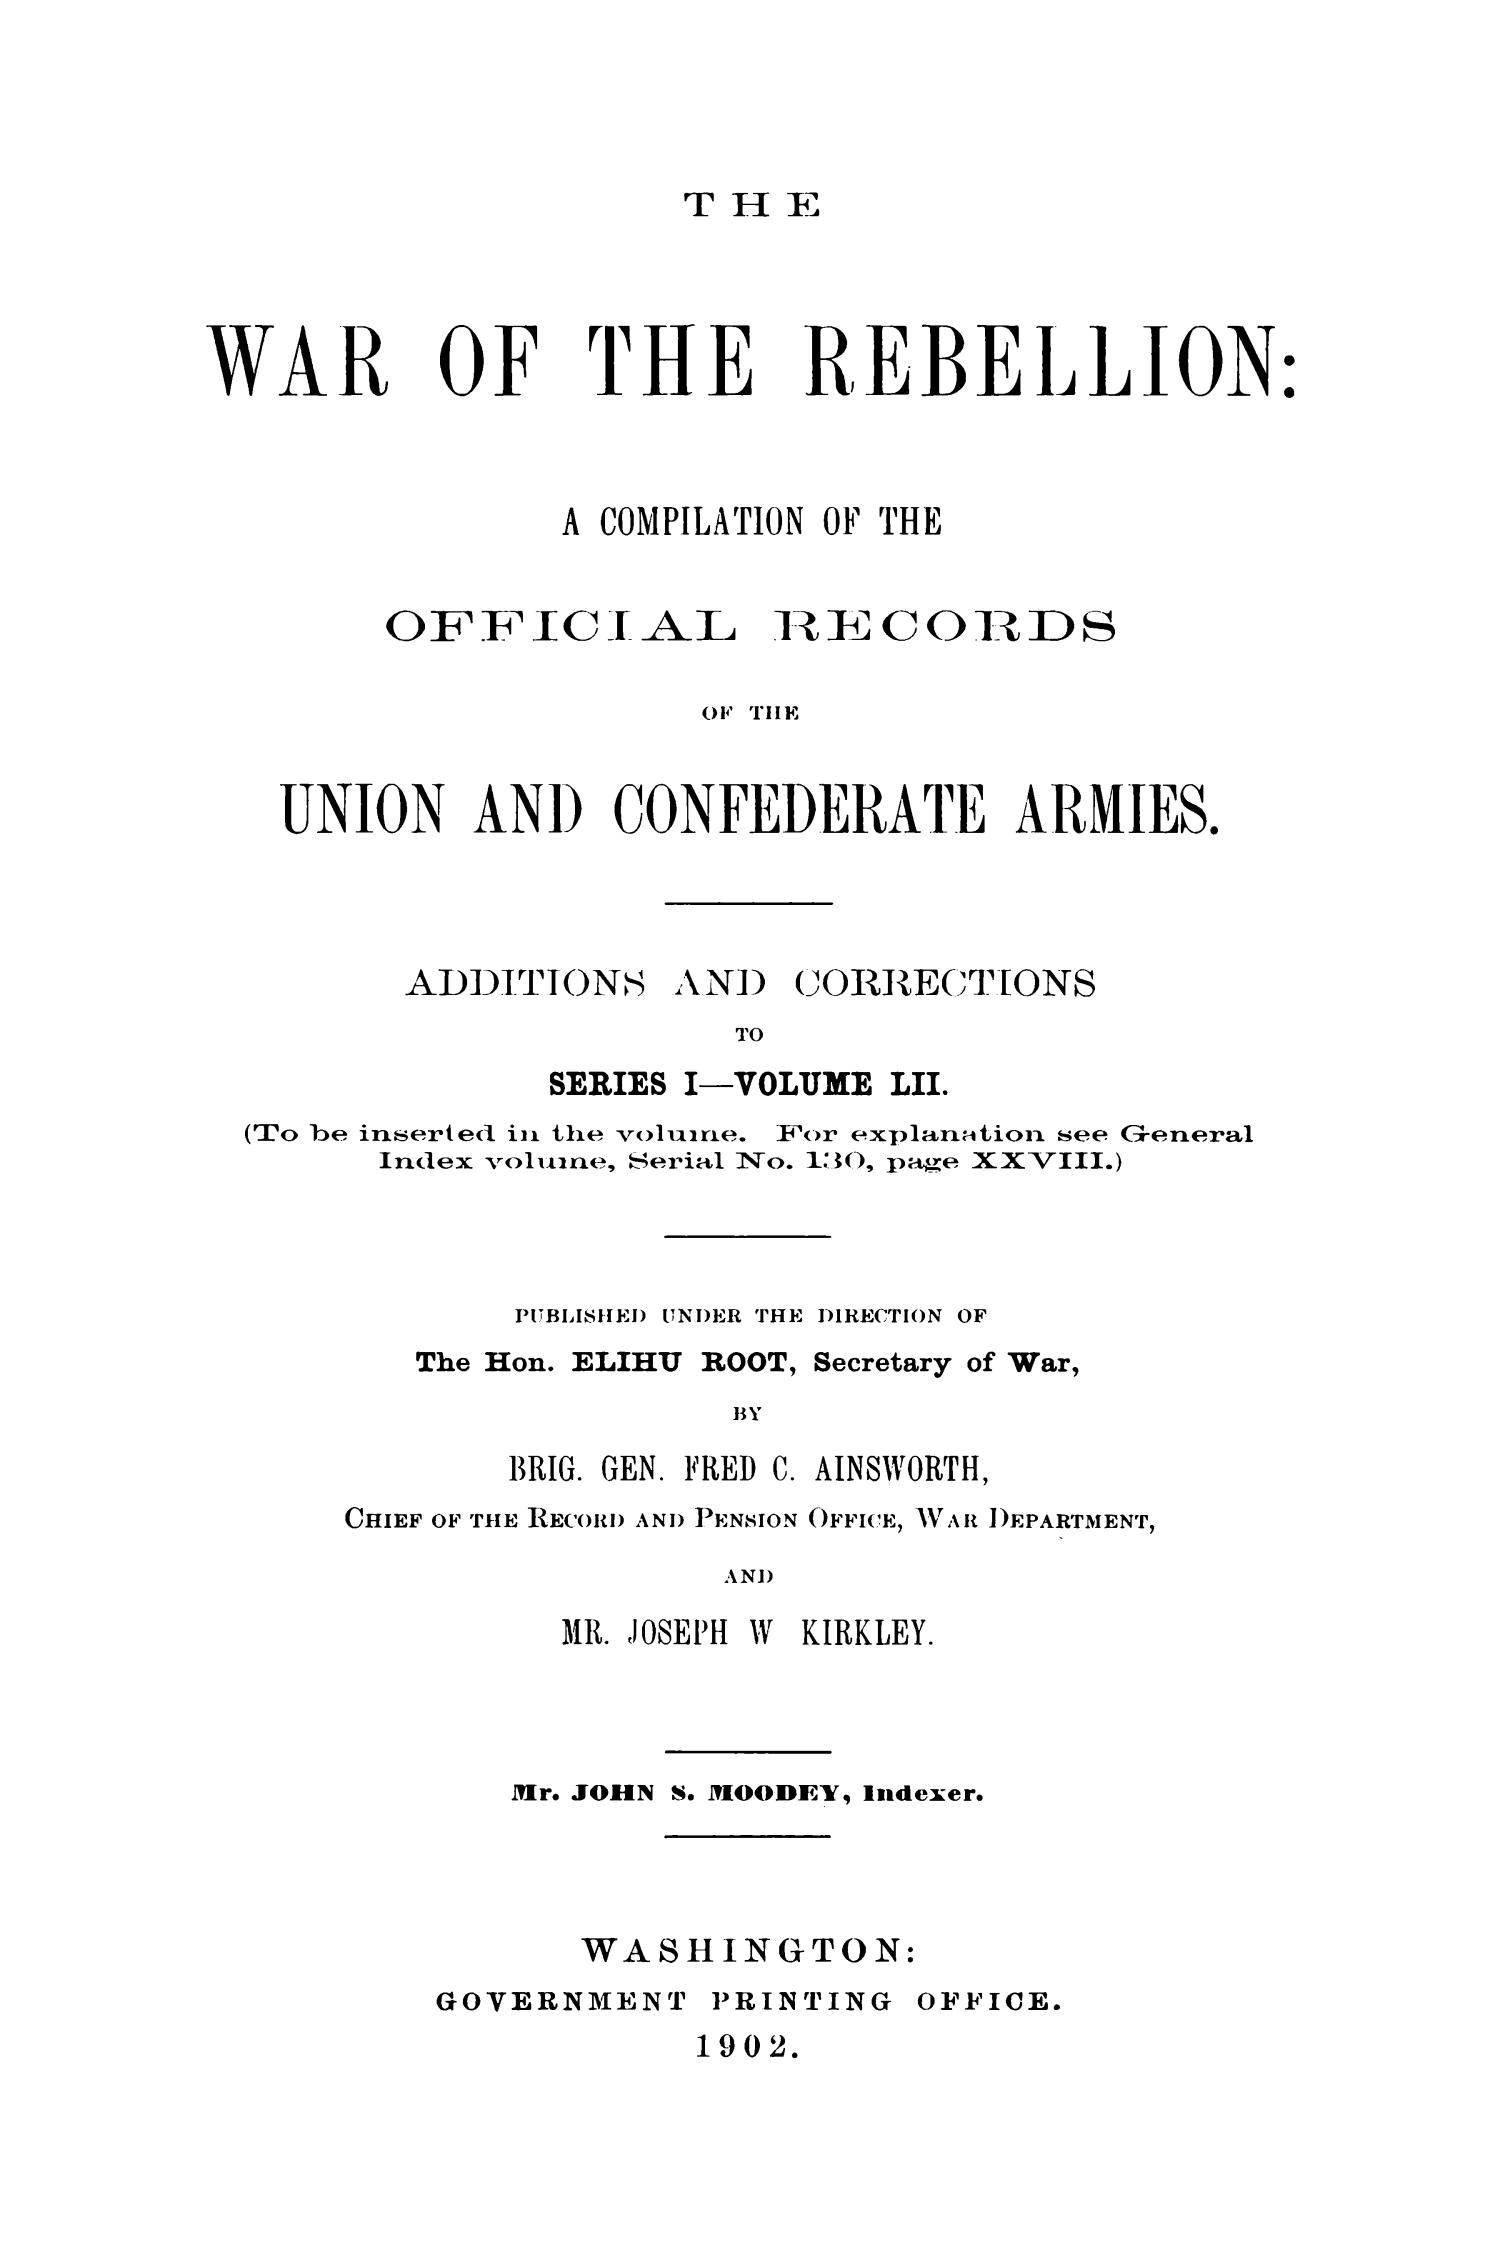 The War of the Rebellion: A Compilation of the Official Records of the Union And Confederate Armies. Additions and Corrections to Series 1, Volume 52.                                                                                                      1